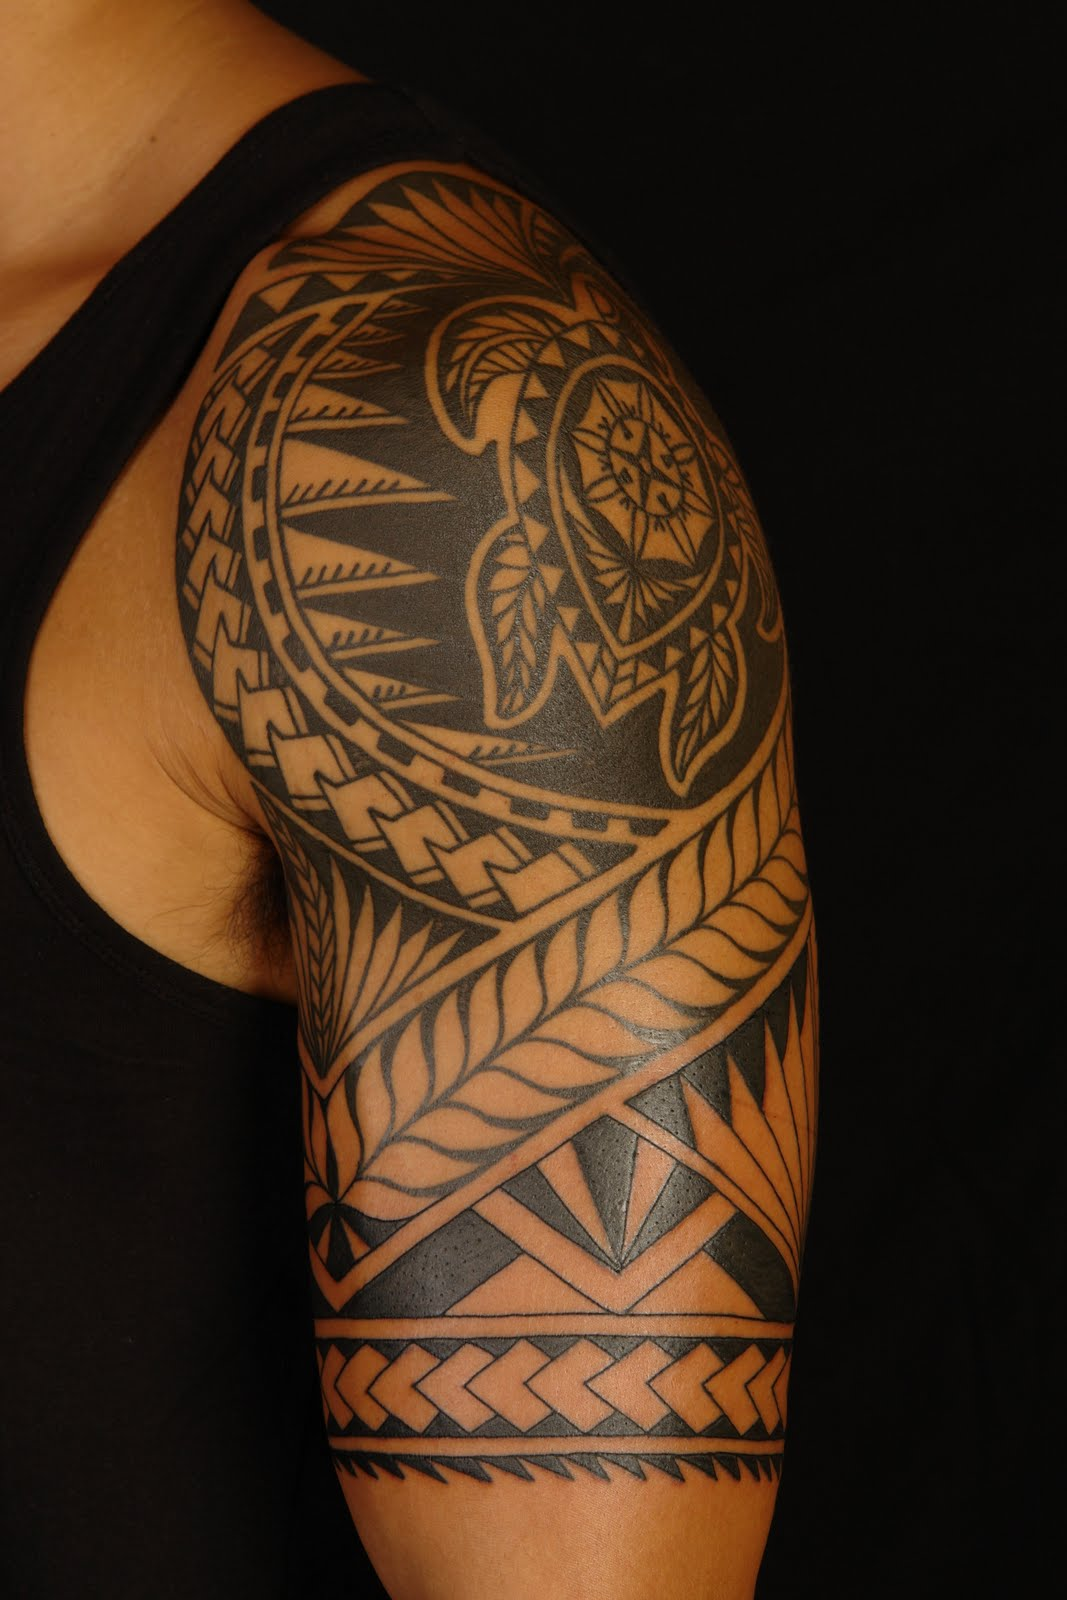 Tatuagem Maori: Maori Tattoos Part 07